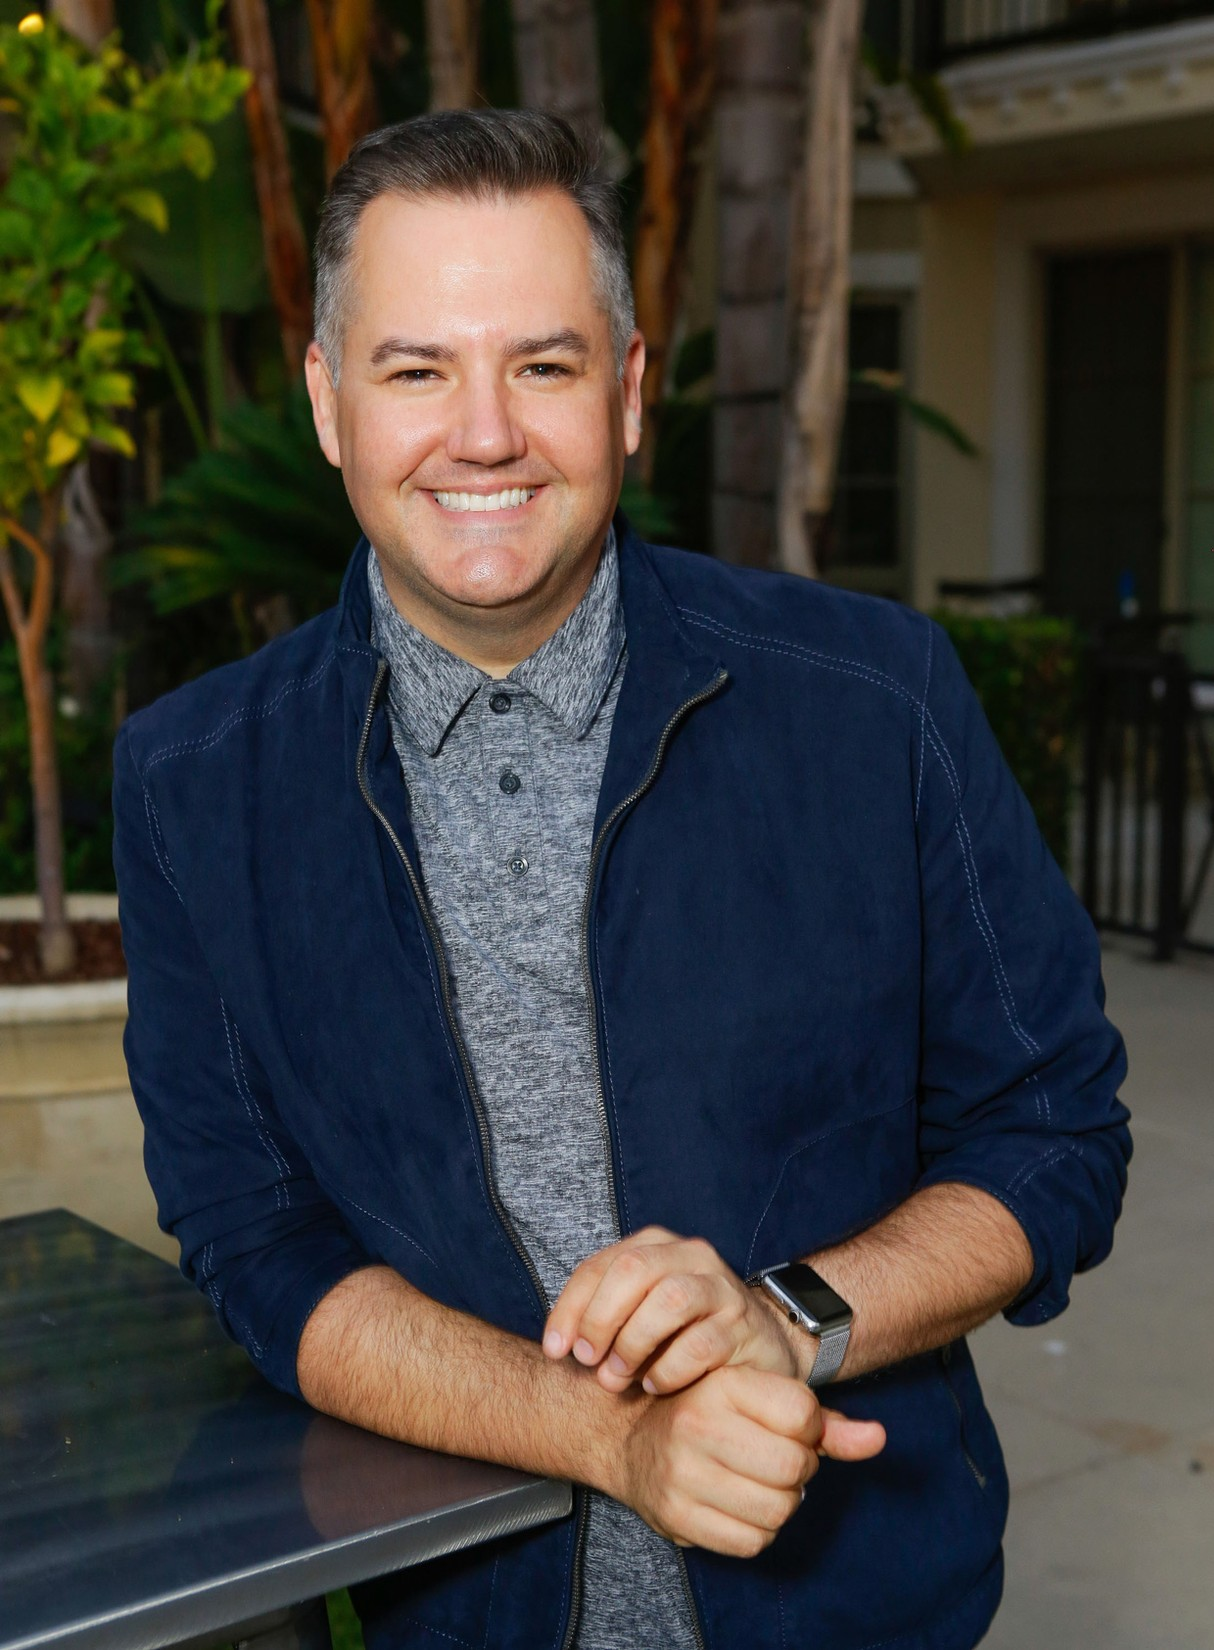 """Ross Mathews co-host's Pride Month Conversation on """"Living Your Best Life"""" at The Americana at Brand on June 28, 2017 in Glendale, Calif."""